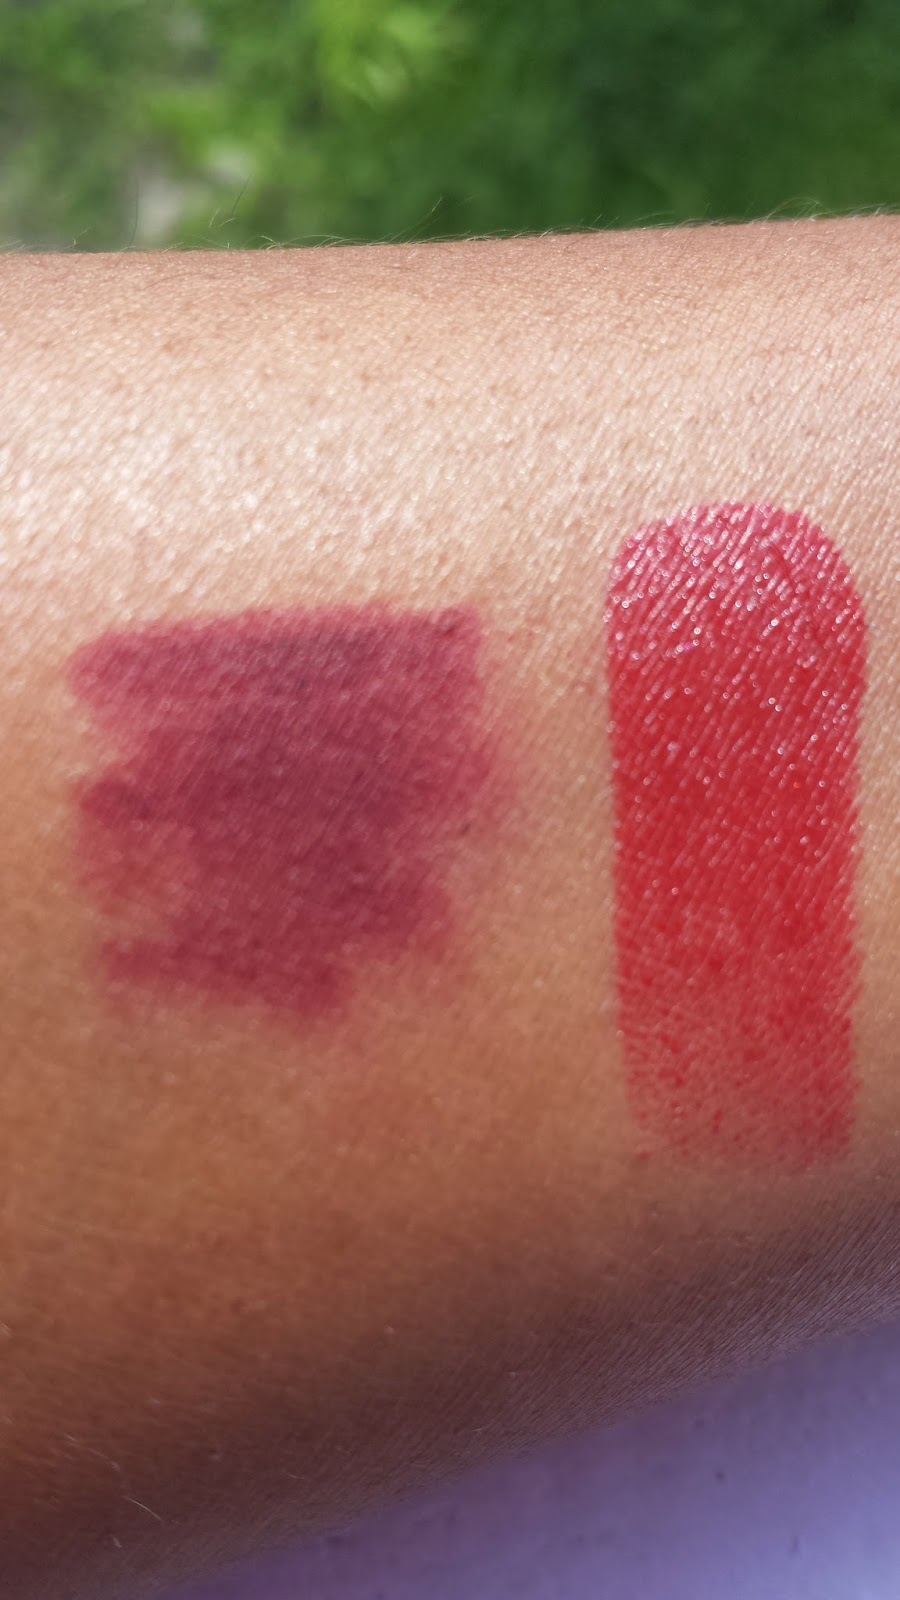 Tom Ford Lip Color 'Rouge Fatal' + OCC Cosmetic Colour Pencil 'Black Dahlia' swatch www.modenmakeup.com